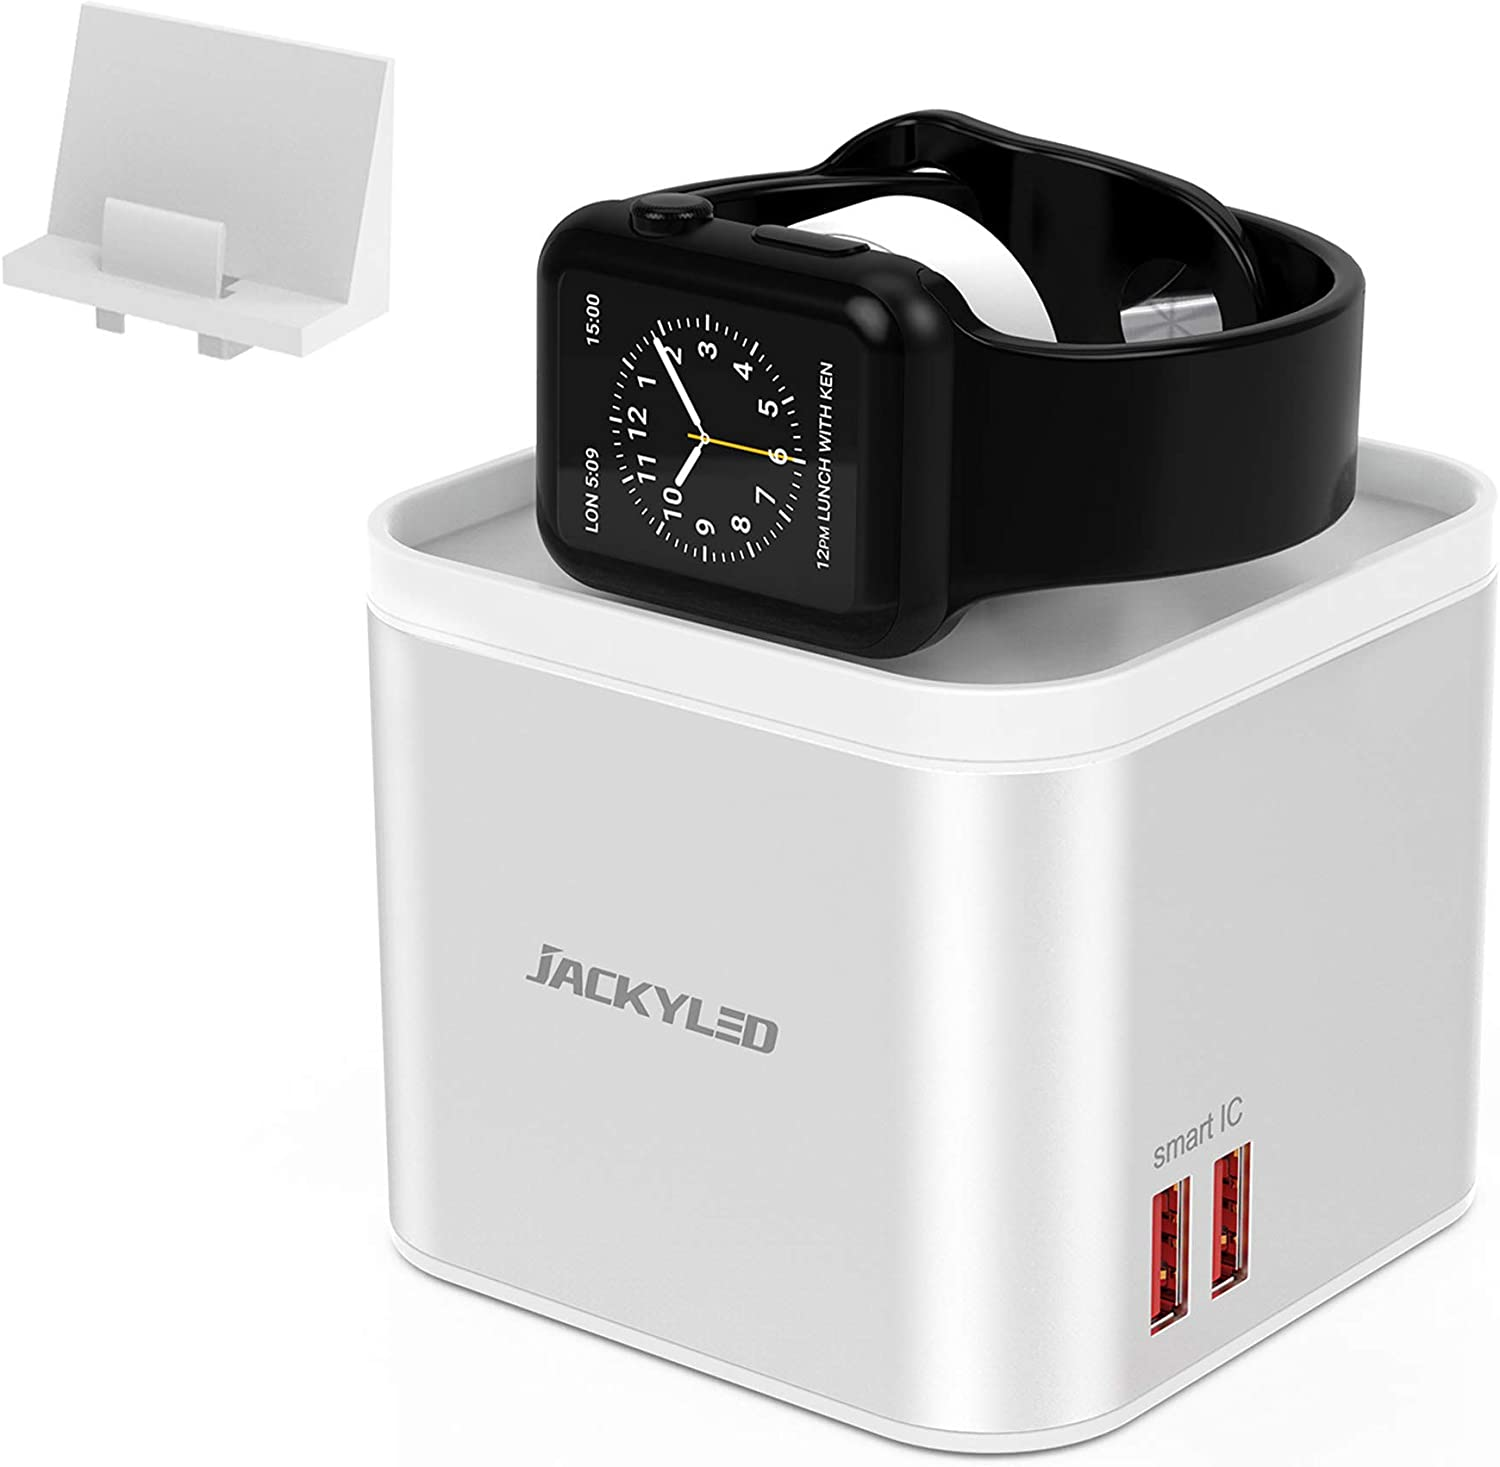 JACKYLED iWatch Charger Stand for Apple iWatch Series 1-5, Detachable Wireless Charging Pad for iPhone 12/11/XS and Samsung S10/9, Charging Station with 5 USB Ports and Phone Holder for Multi Devices